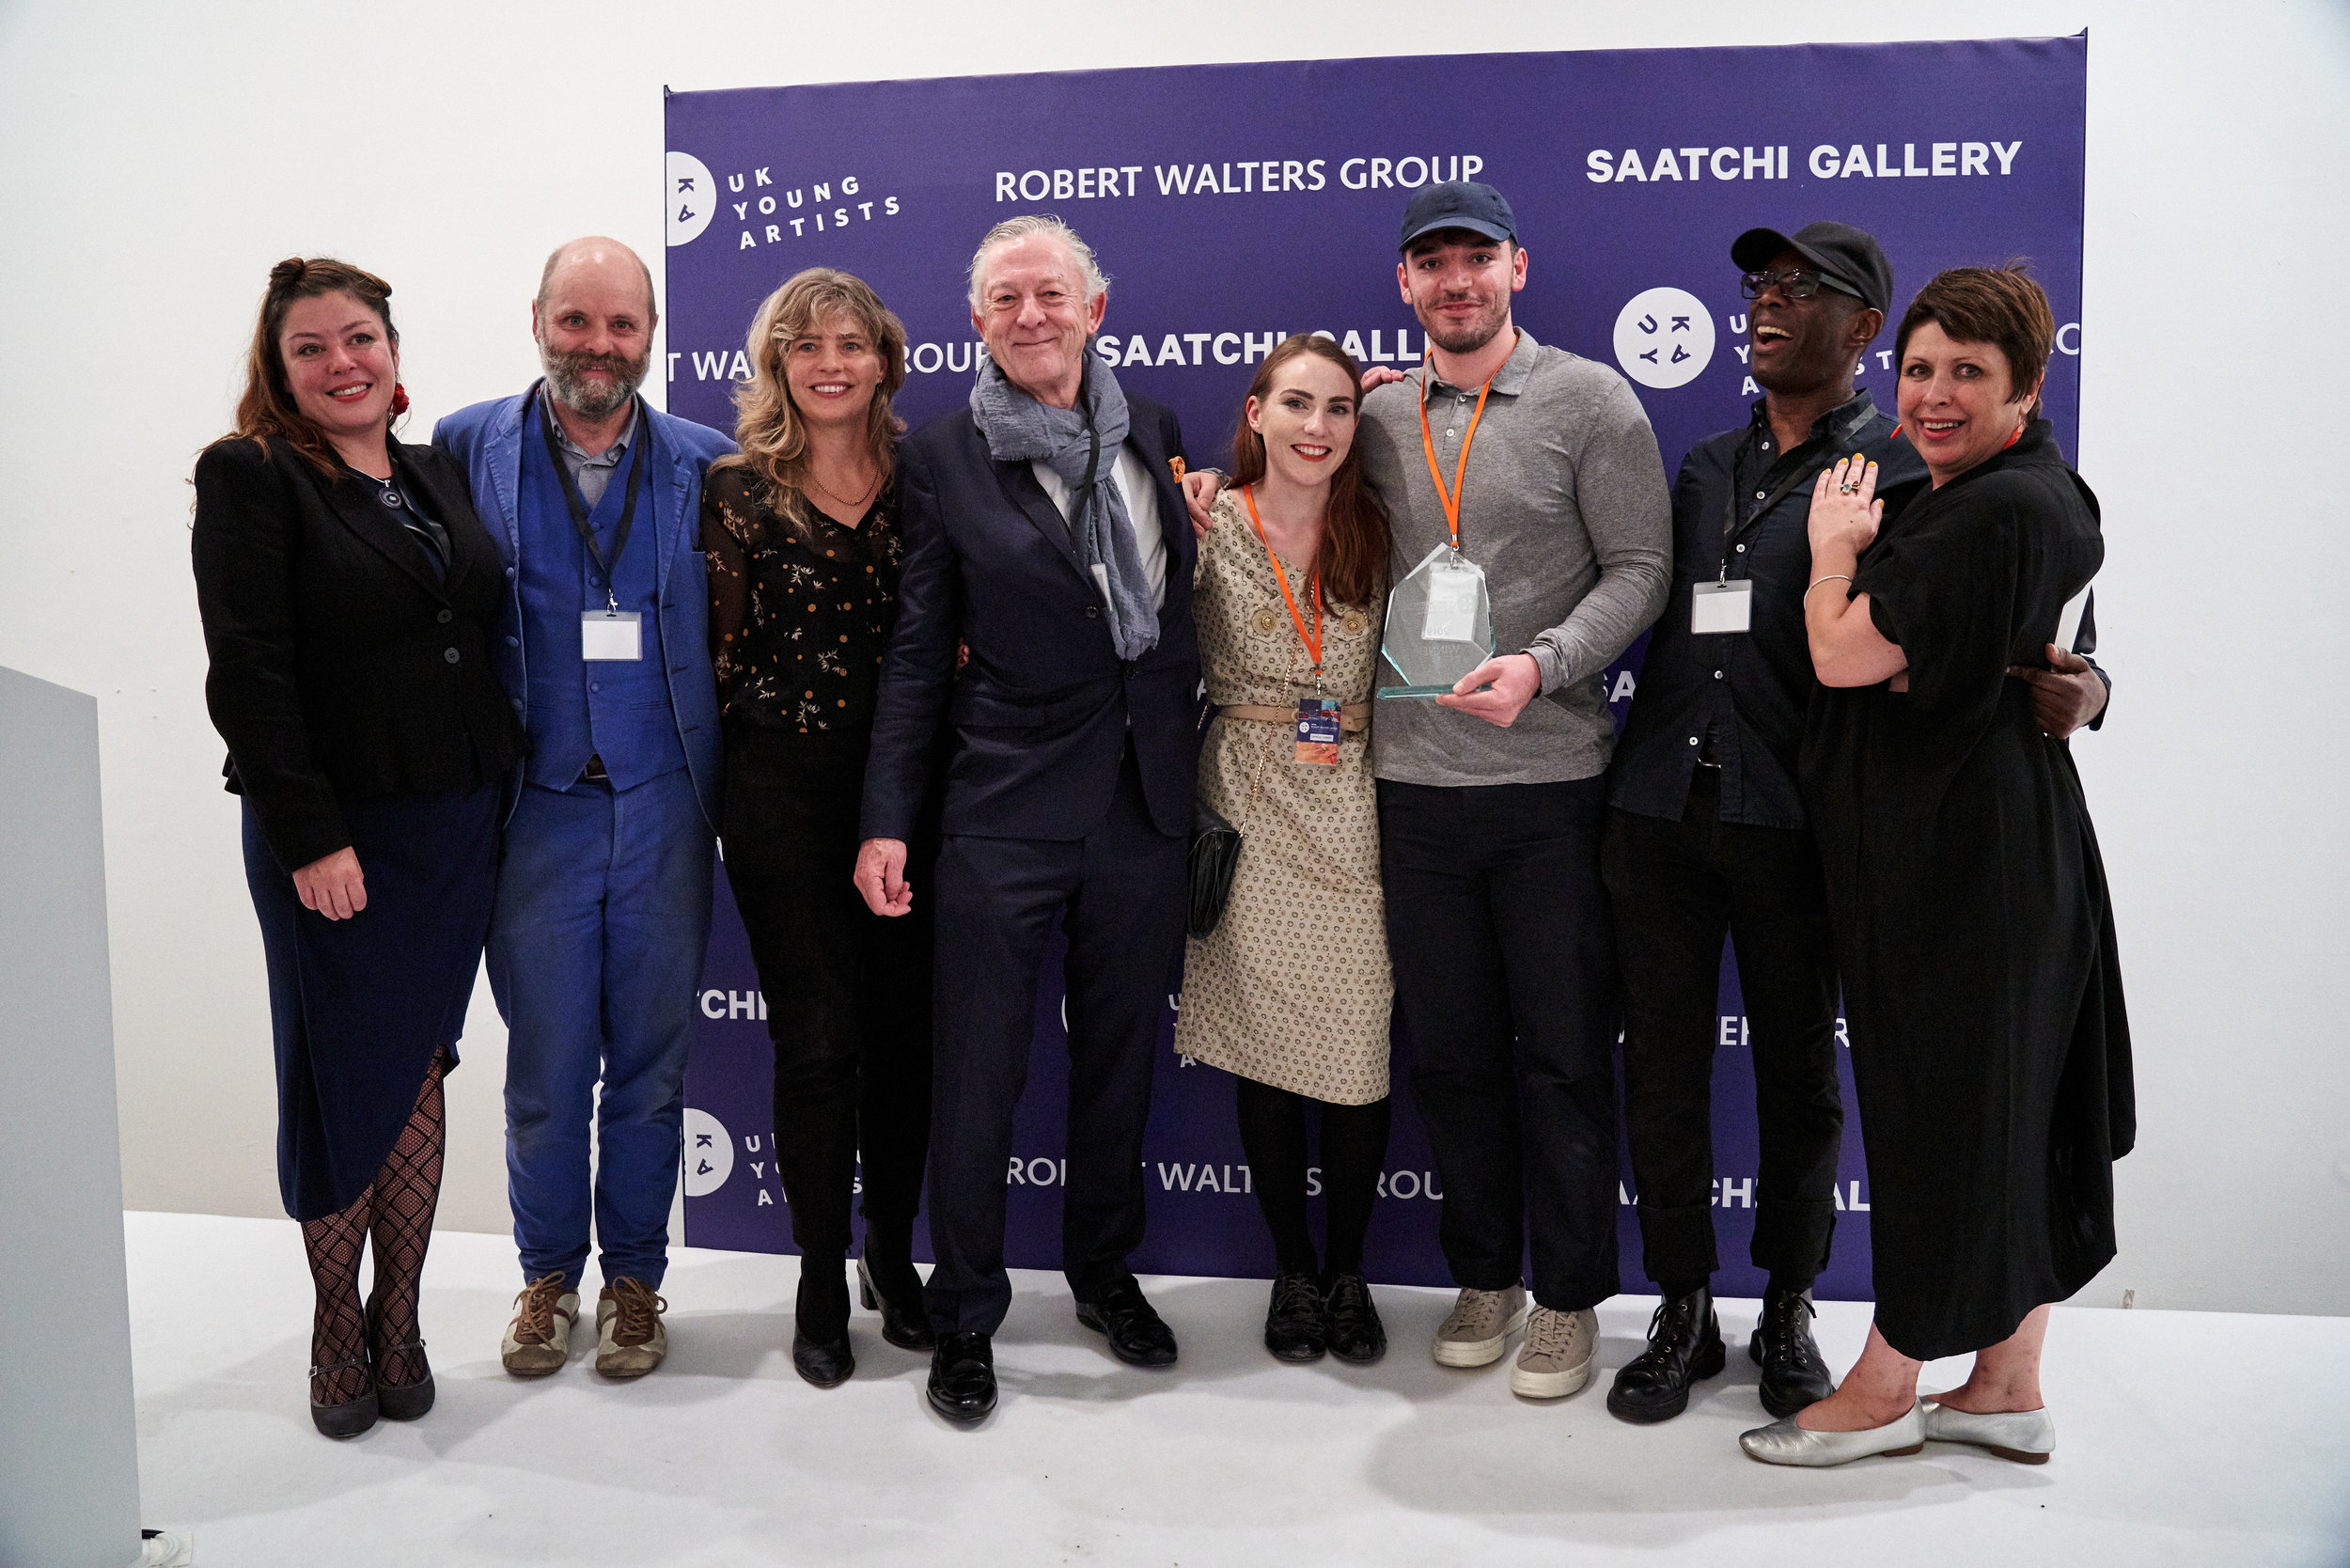 Judges and winners (left to right): Rosalind Davis, Gavin Turk, Philippa Adams, Robert Walters, Camilla Hanney, Conor Rogers, Michael Forbes, Michelle Bowen. Photo by Reece Straw.